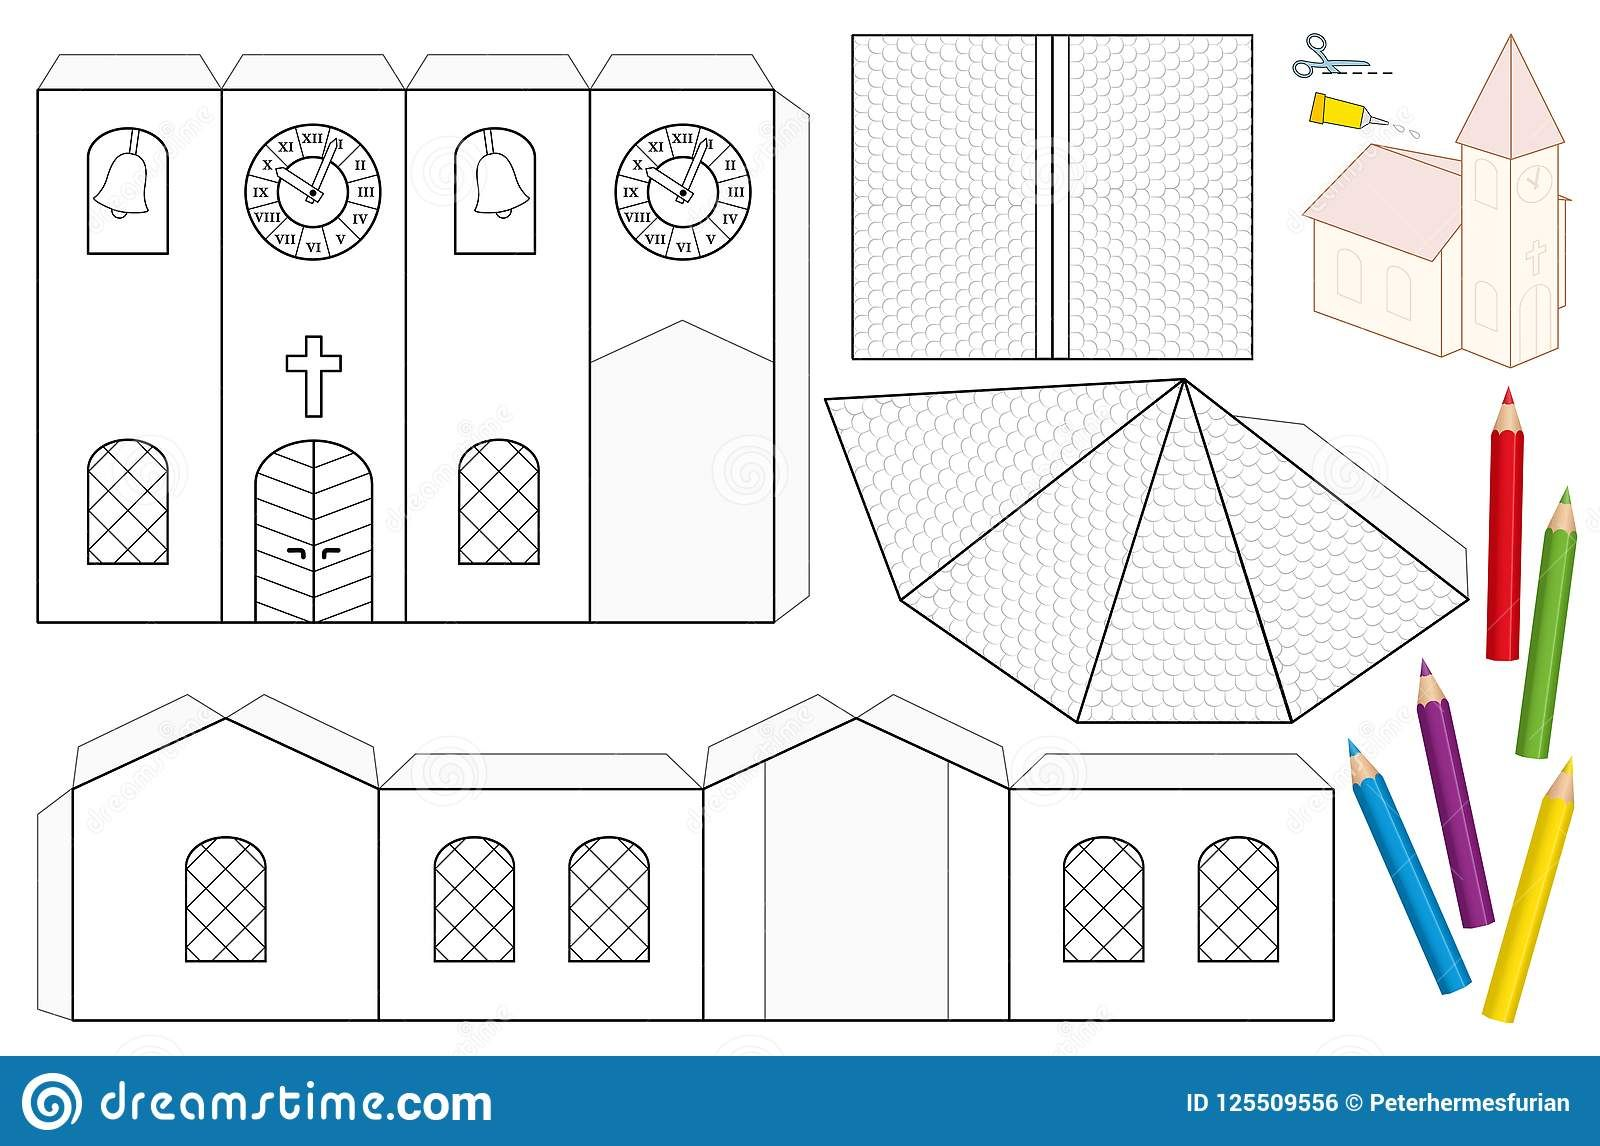 Church Paper Craft Coloring Template Photo About Dimensional Church Craft Clock Outline Creative Nave Paper House Template Paper House Diy Paper Crafts